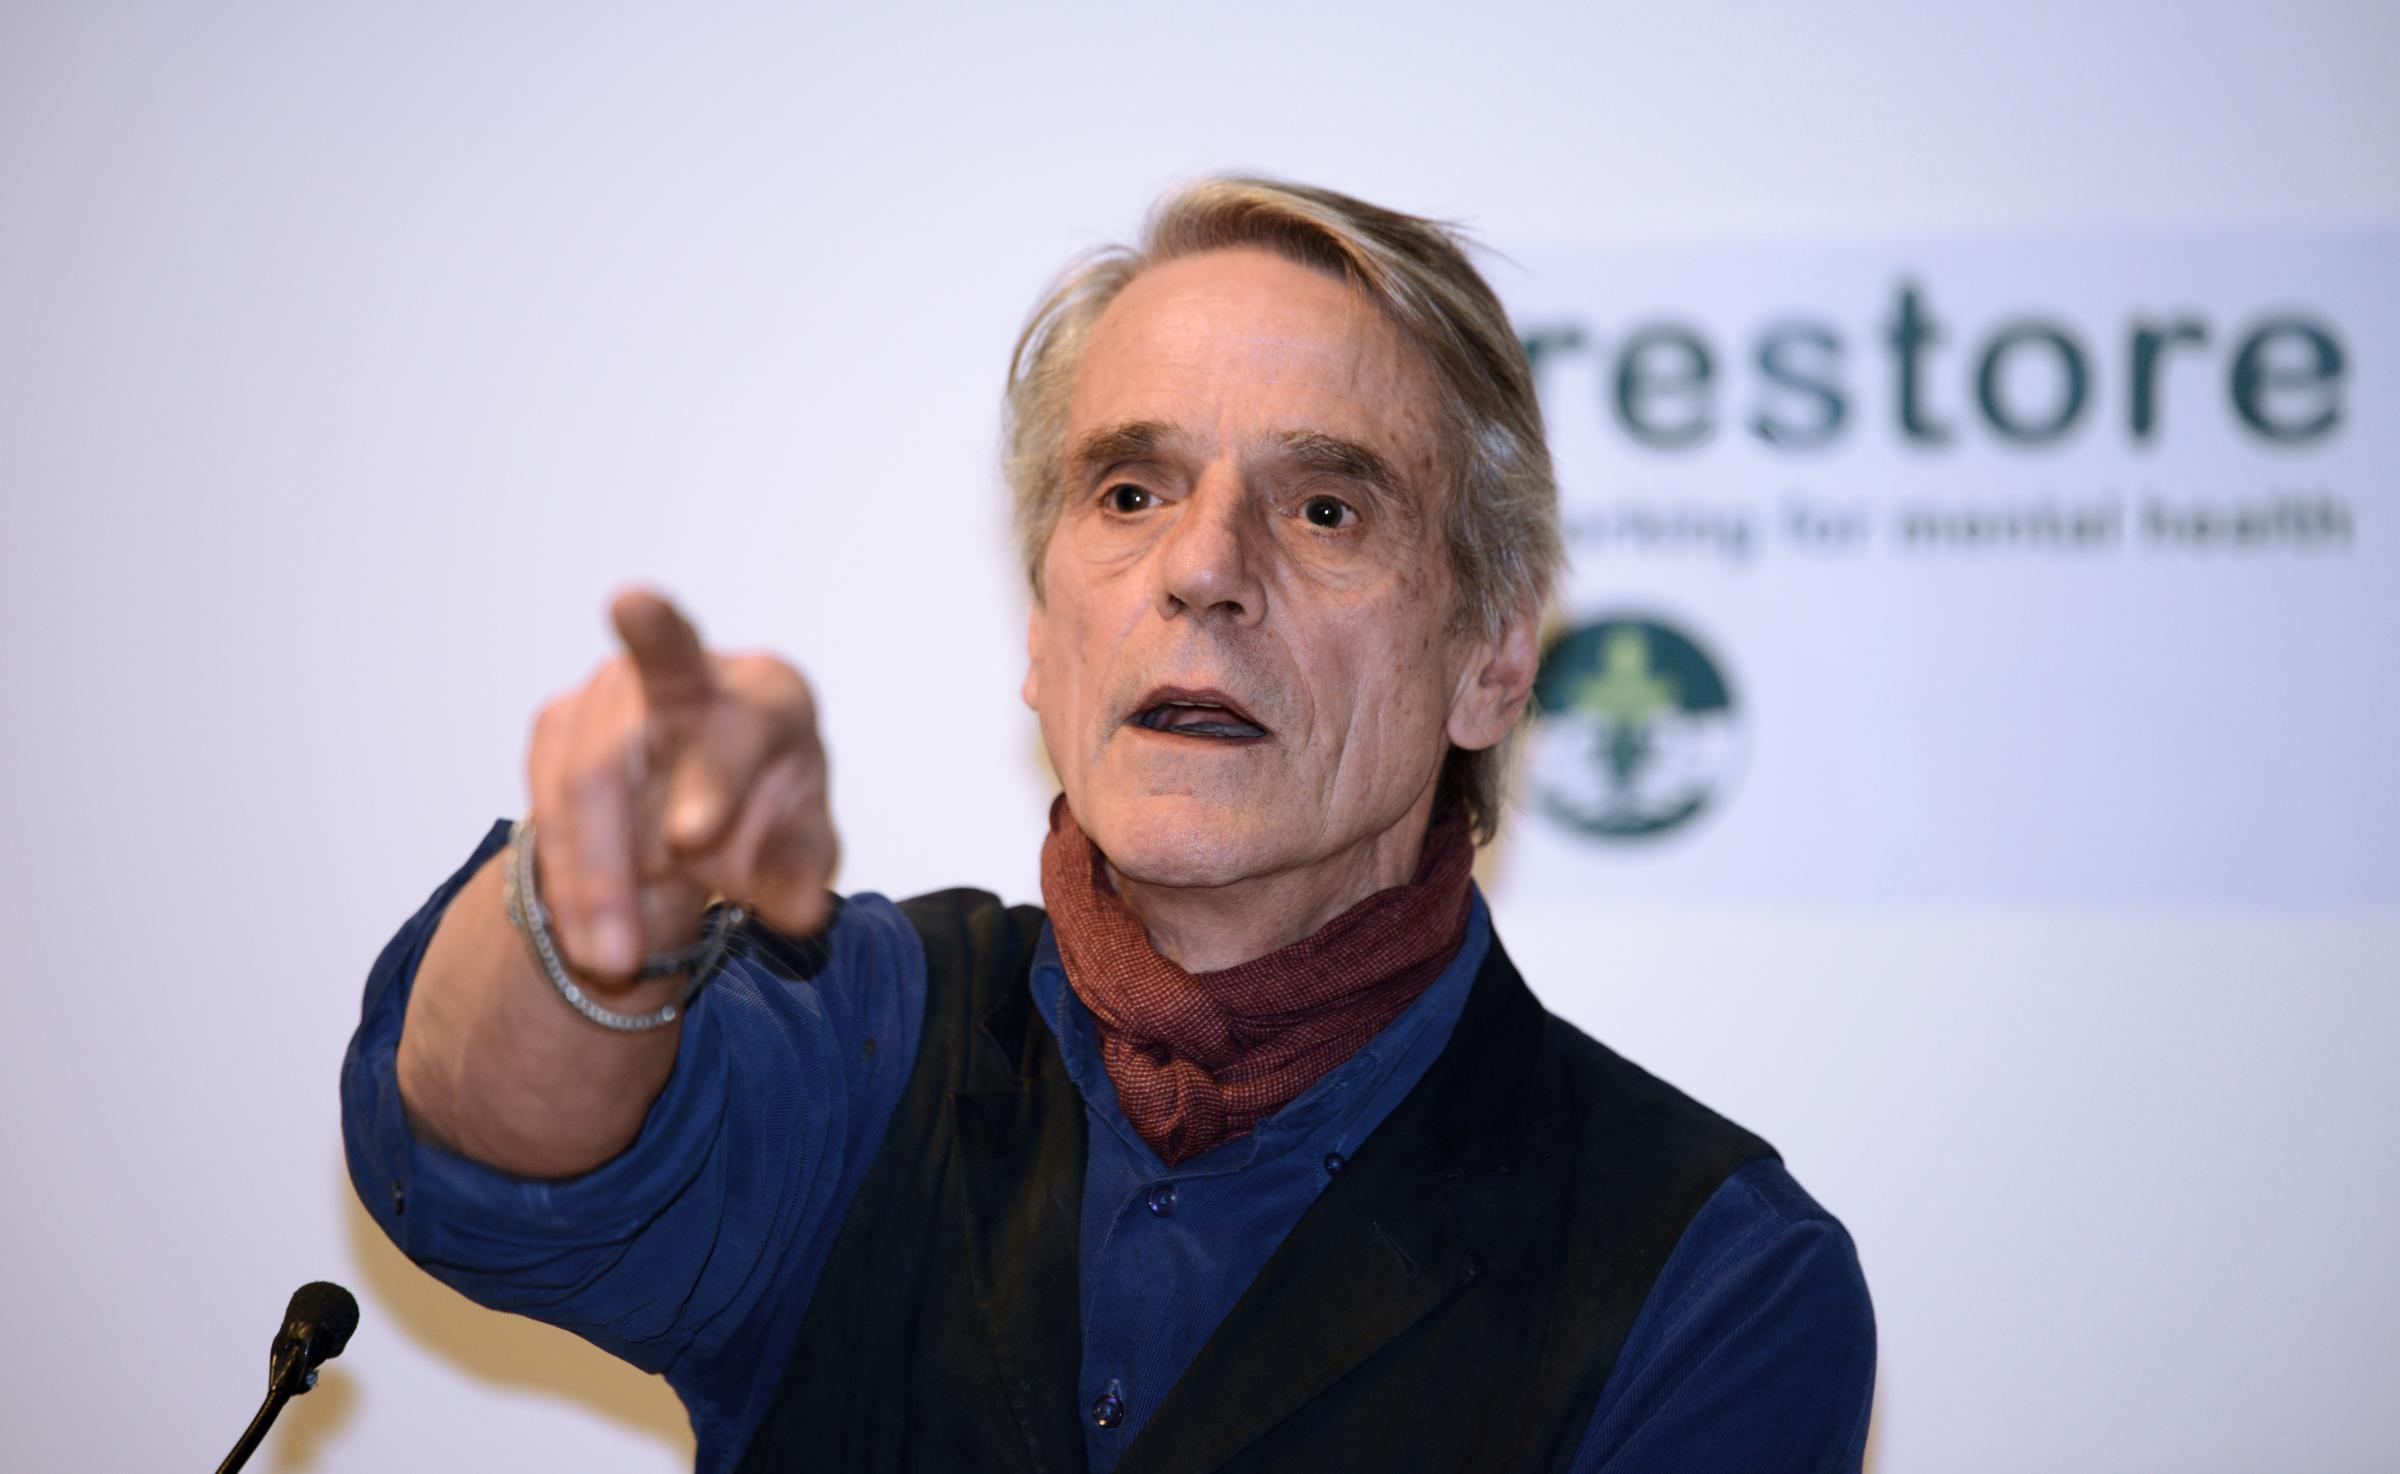 Jeremy Irons hosts Restore's charity auction. Picture: Restore